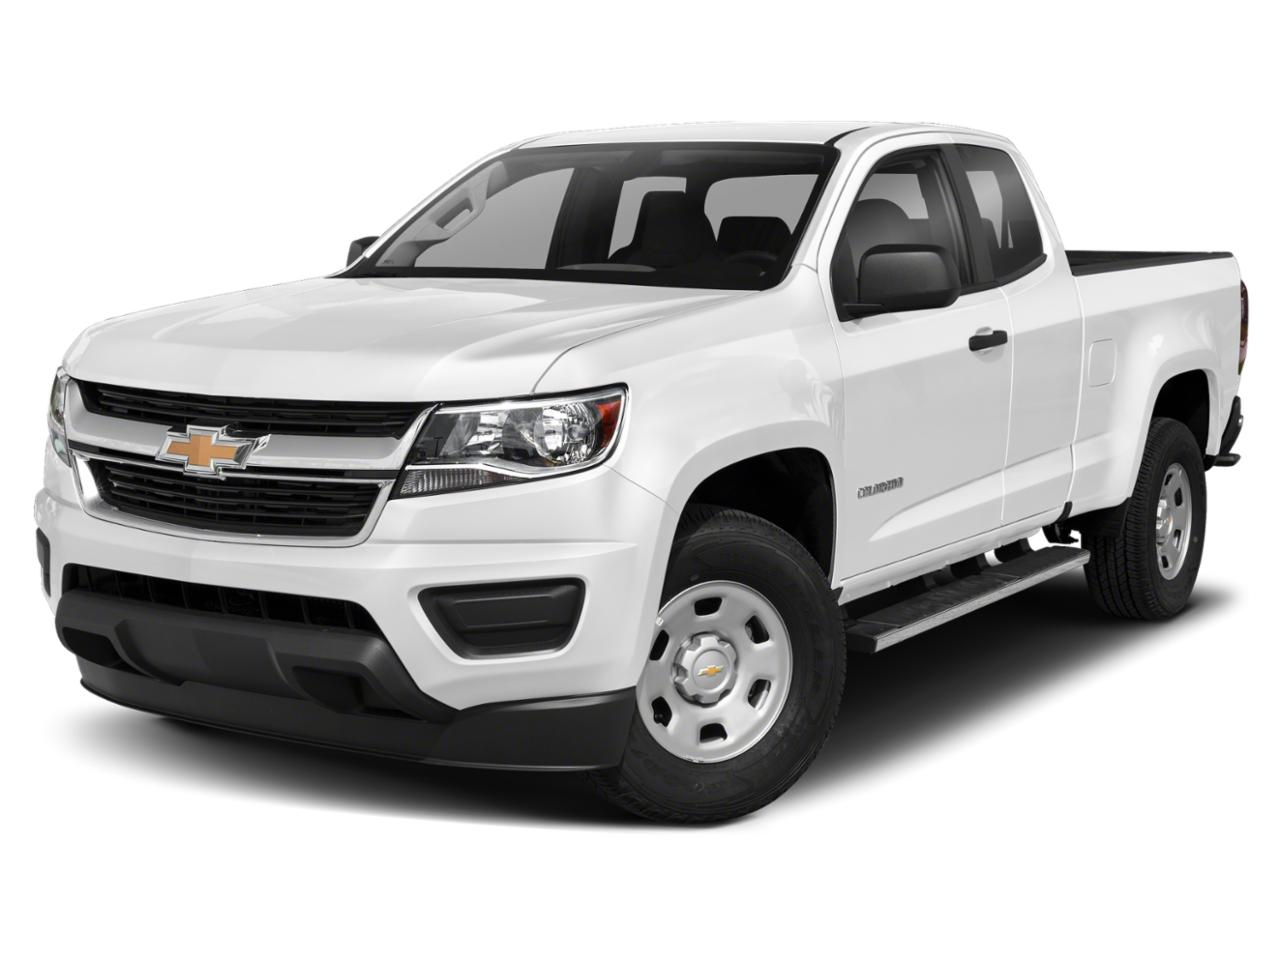 2020 Chevrolet Colorado WORK TRUCK Crew Cab Pickup Slide 0